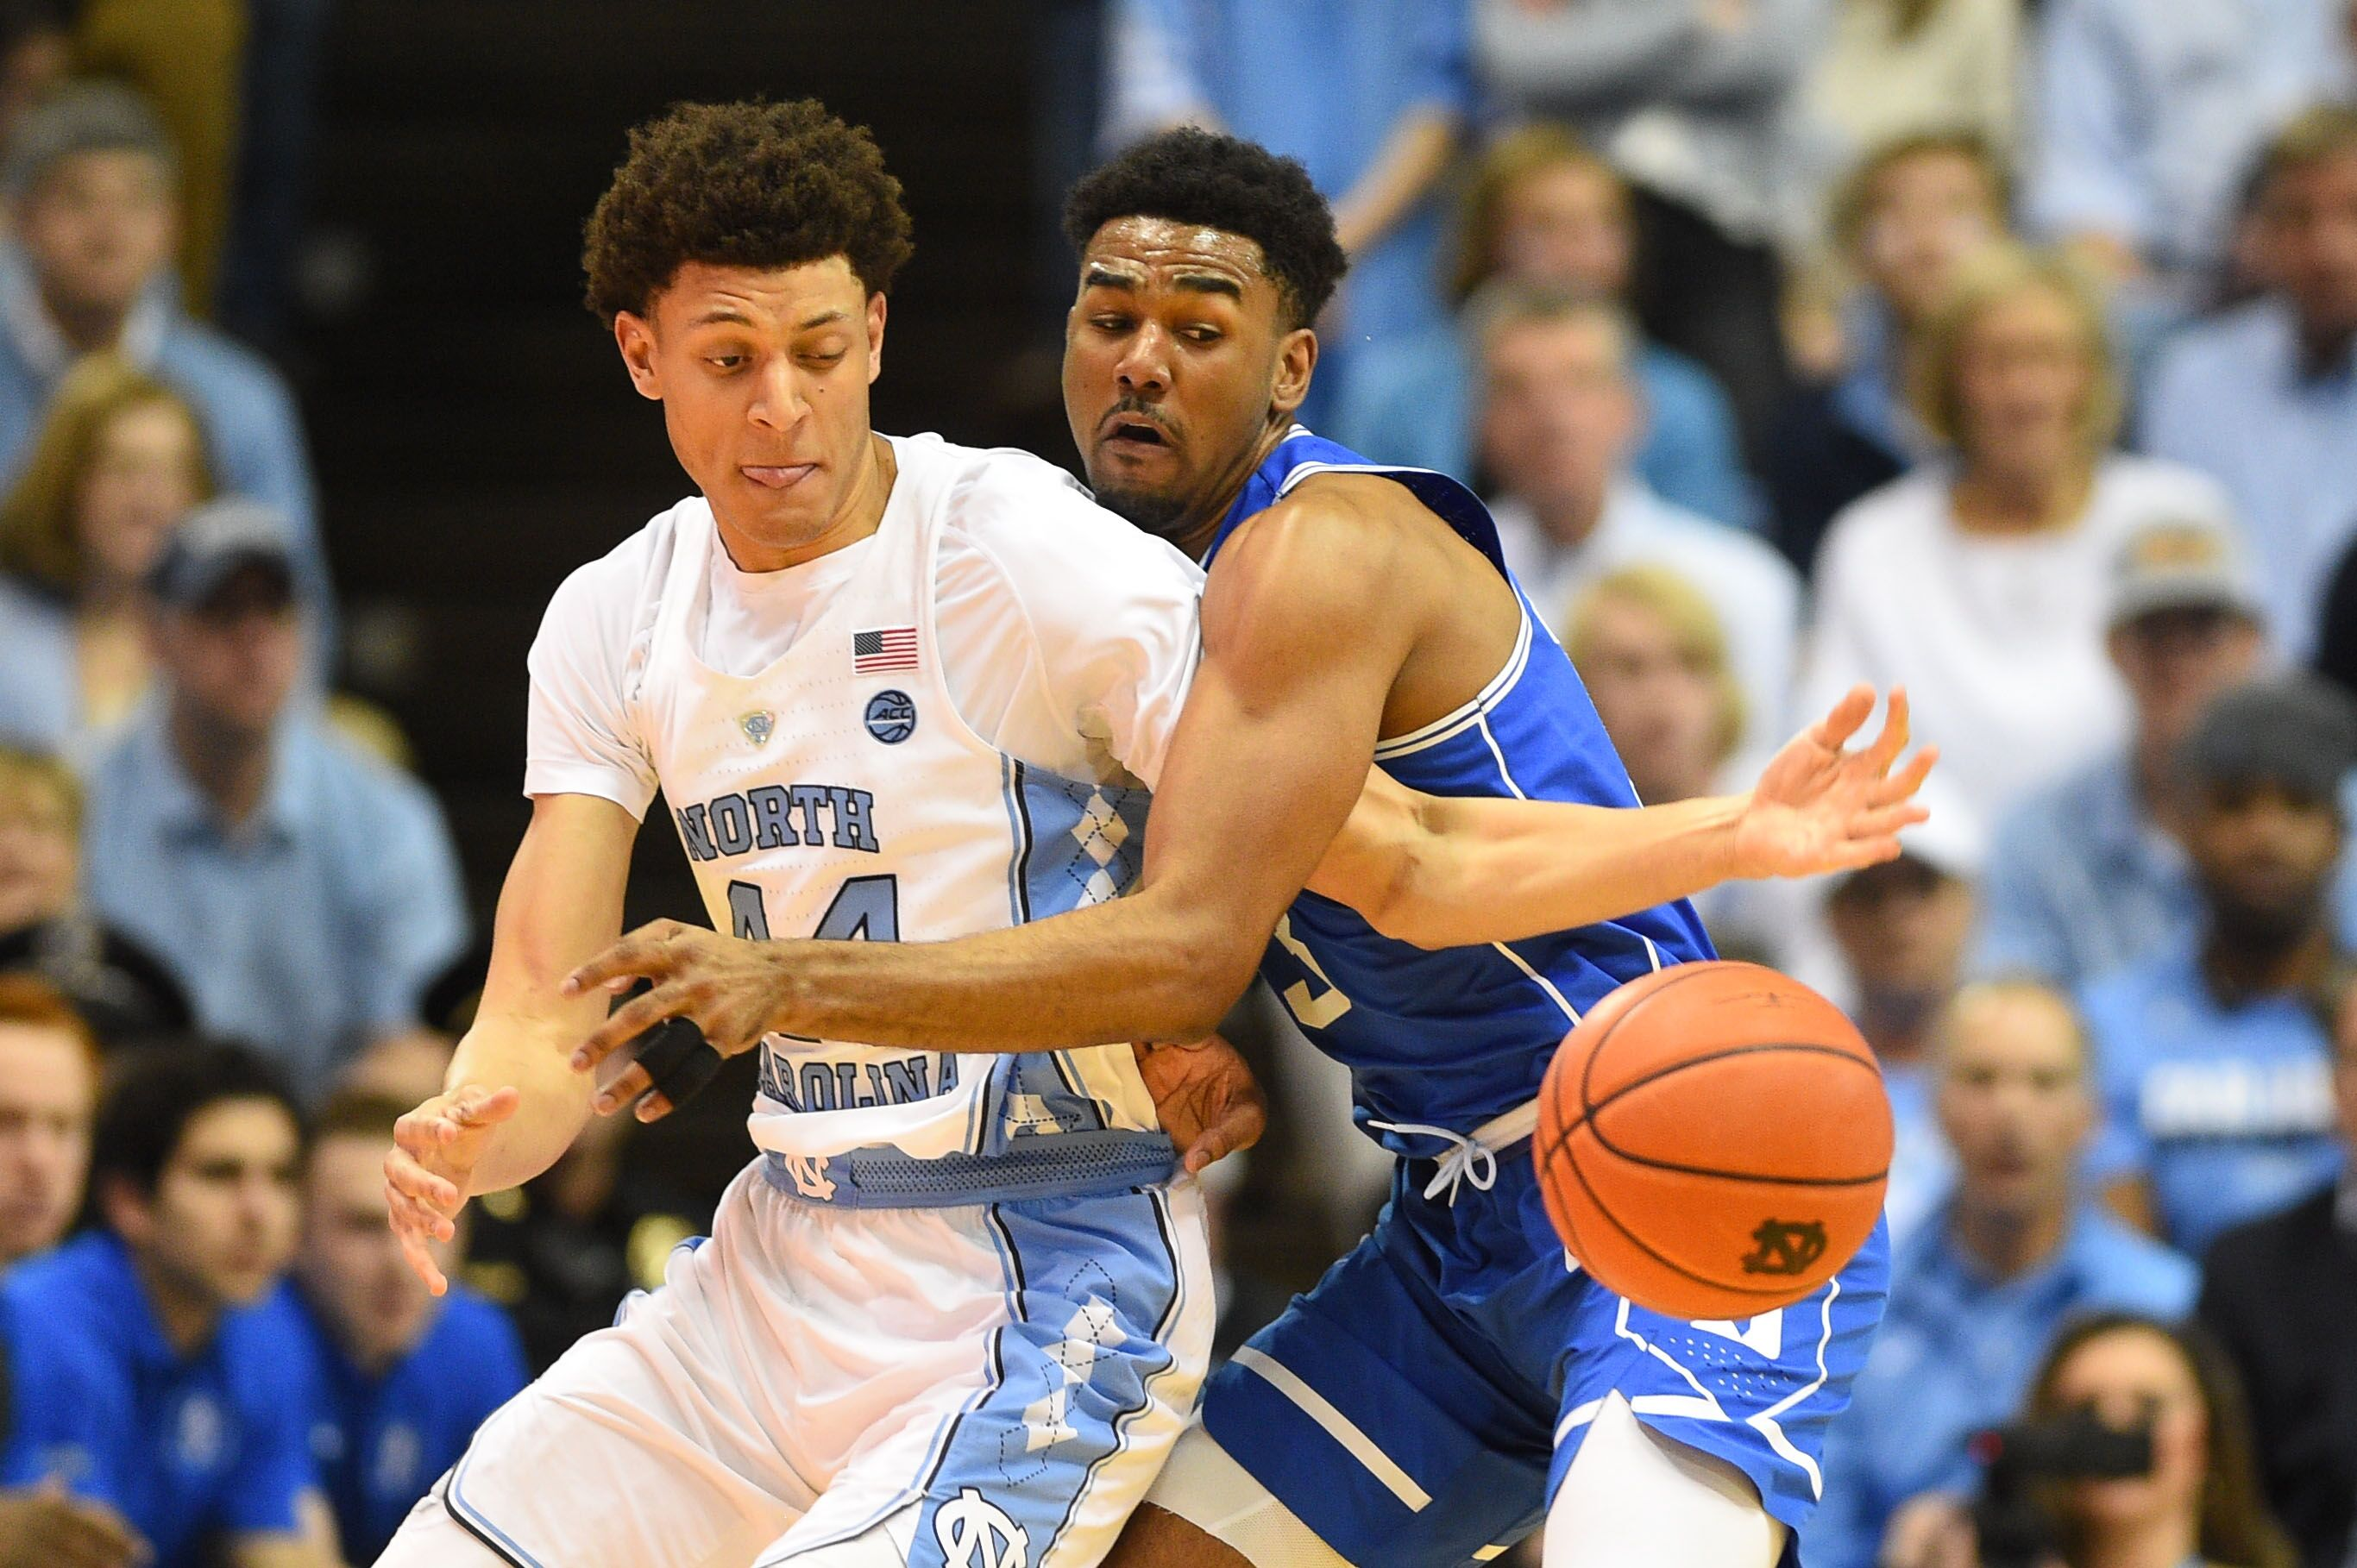 tar heel senior dating site Clemson had lost 10 straight and 20 of 21 - dating back to 2004 - to the tar heels entering this latest matchup ''this is my first time beating north carolina,'' said devoe, a senior from shelby, north carolina.